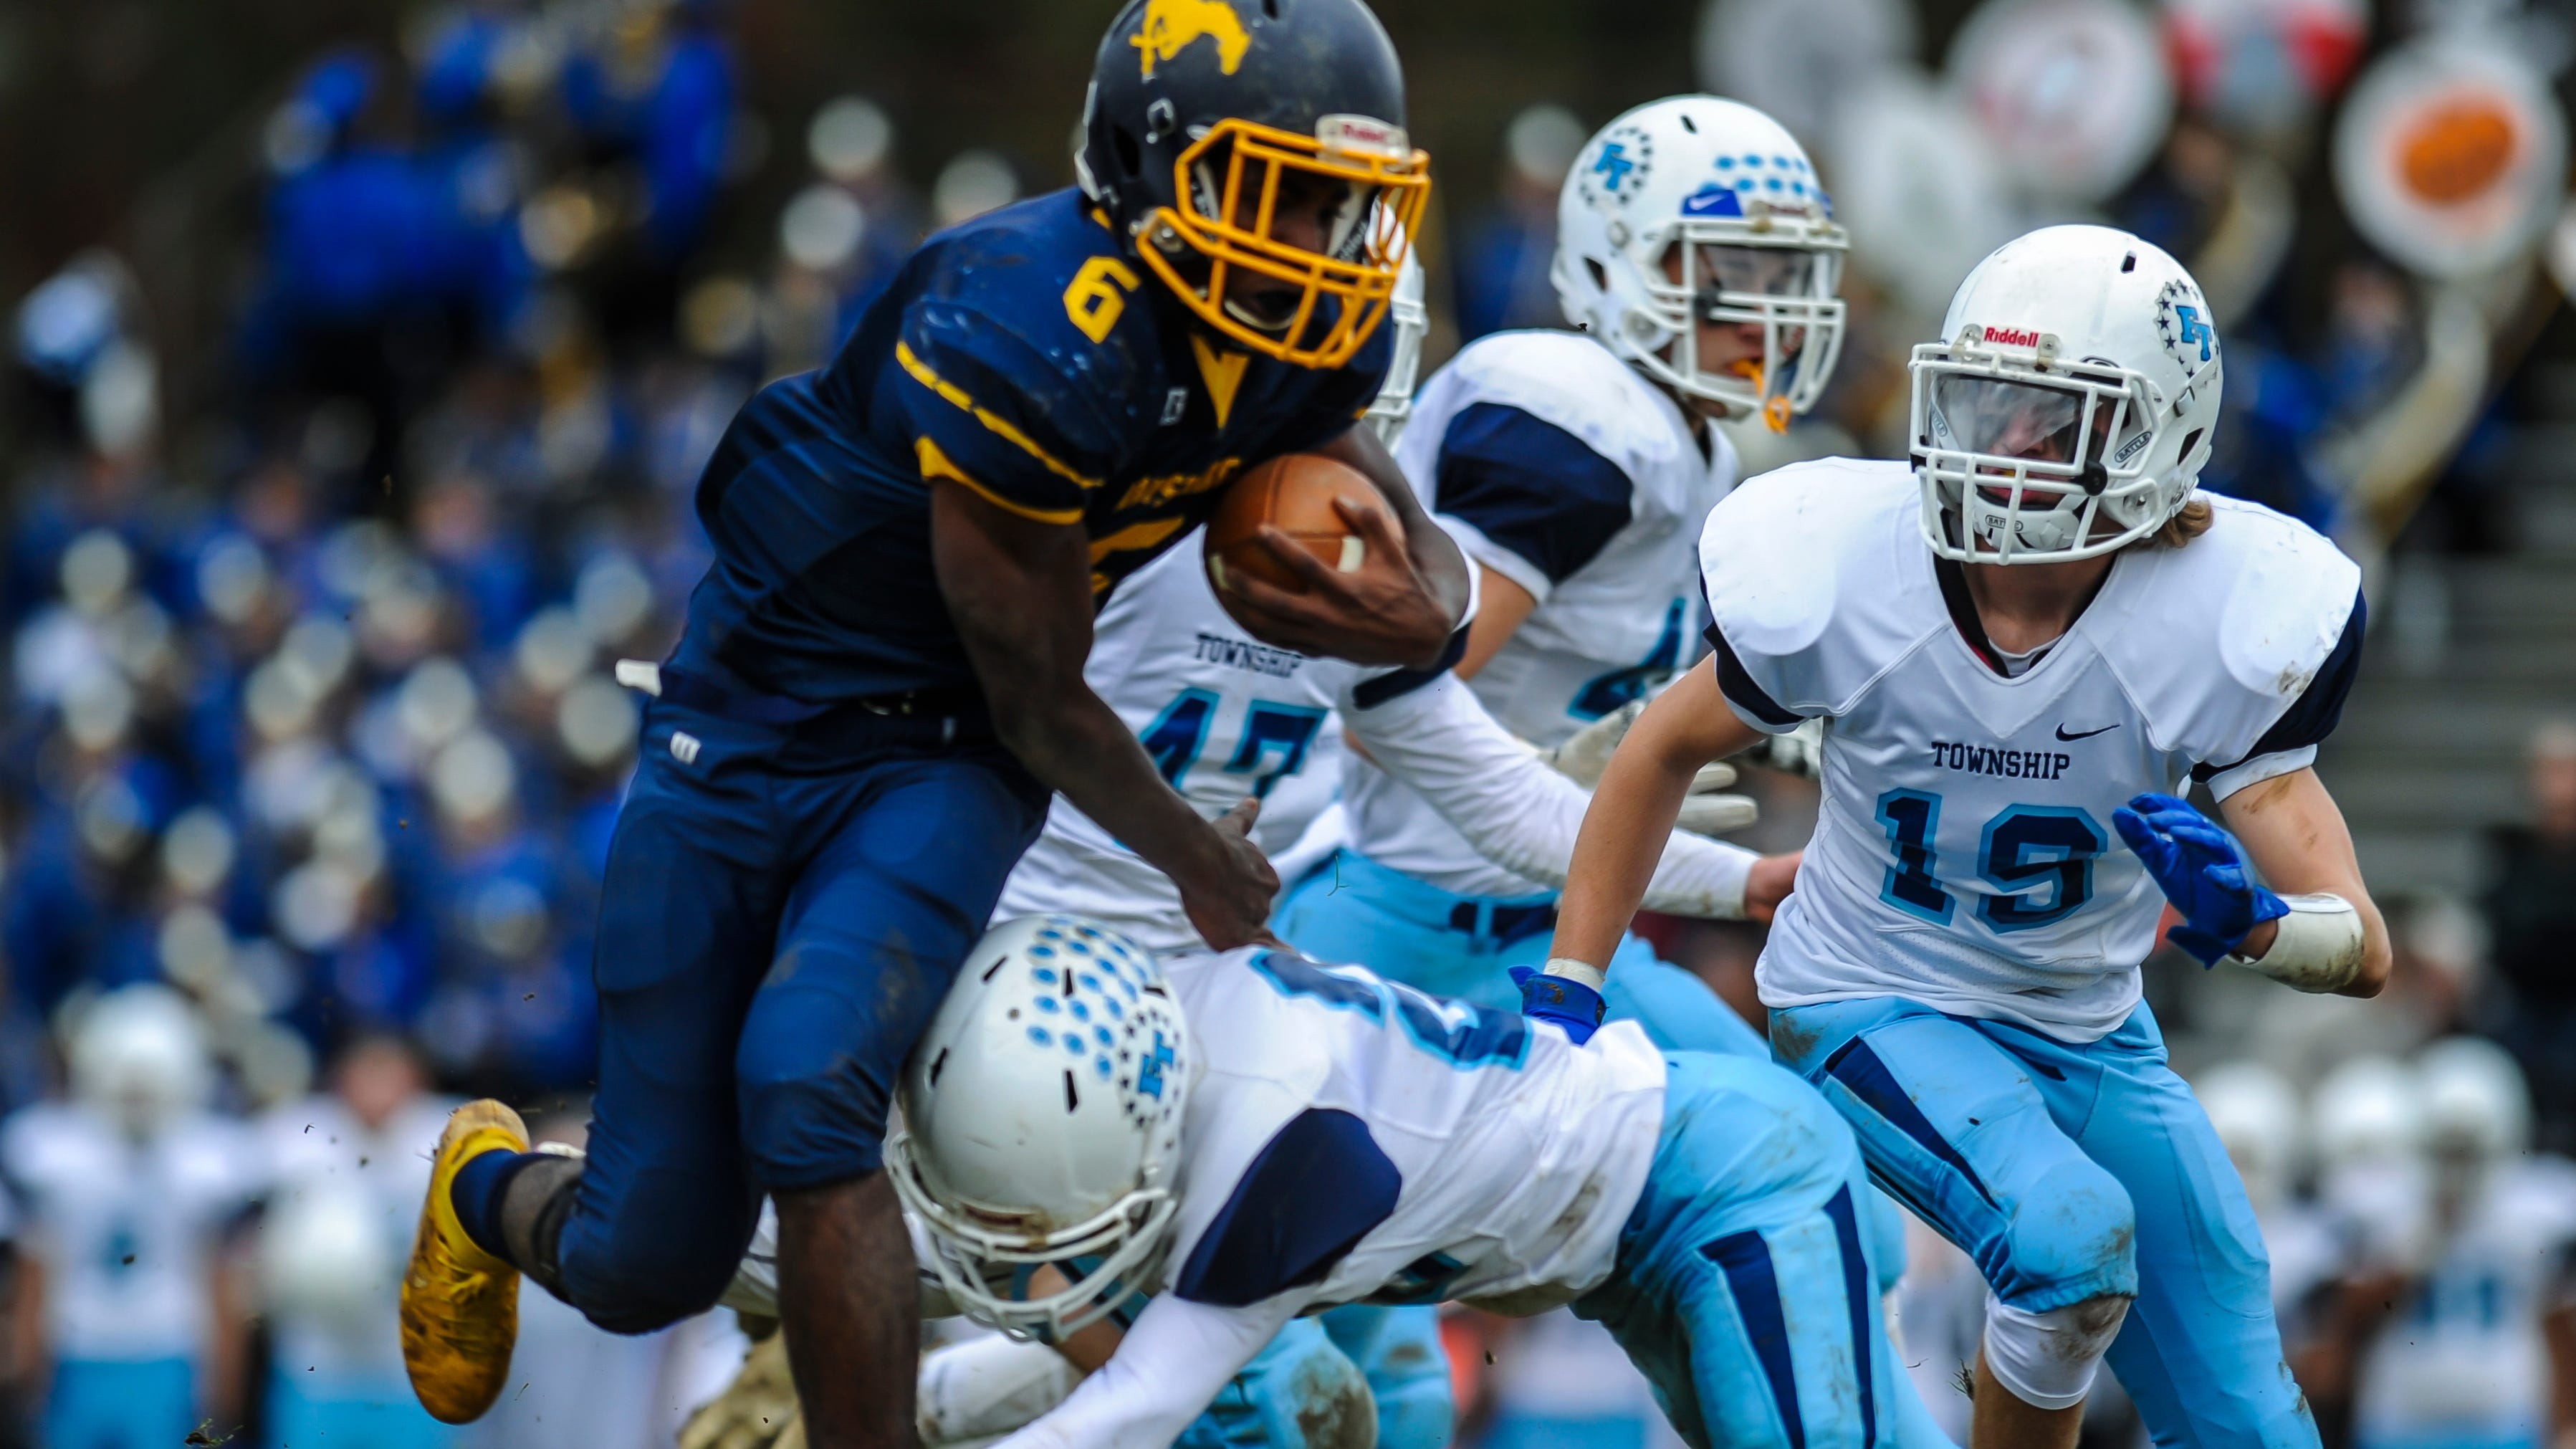 Dontrell Alston of Marlborro is upended by Ronald Veluya of Freehold Township in a game in Marlboro on Oct. 20, 2018.